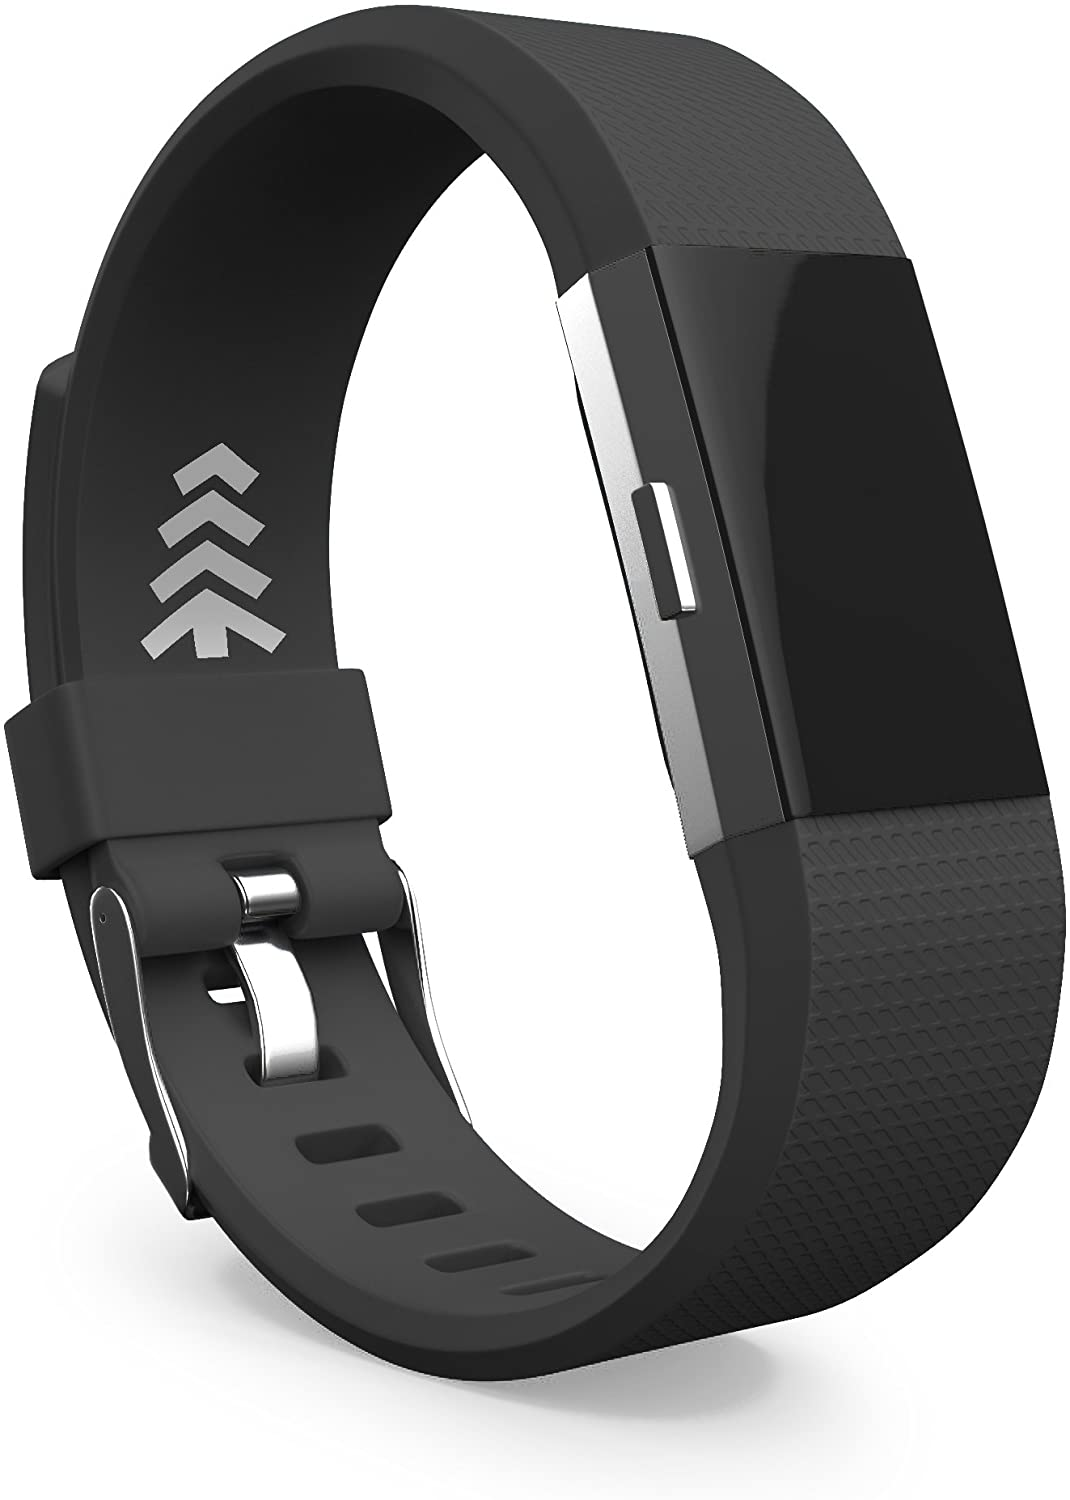 Teak - Silicone Sport Replacement Wristband for Fitbit Charge 2 - Large Black